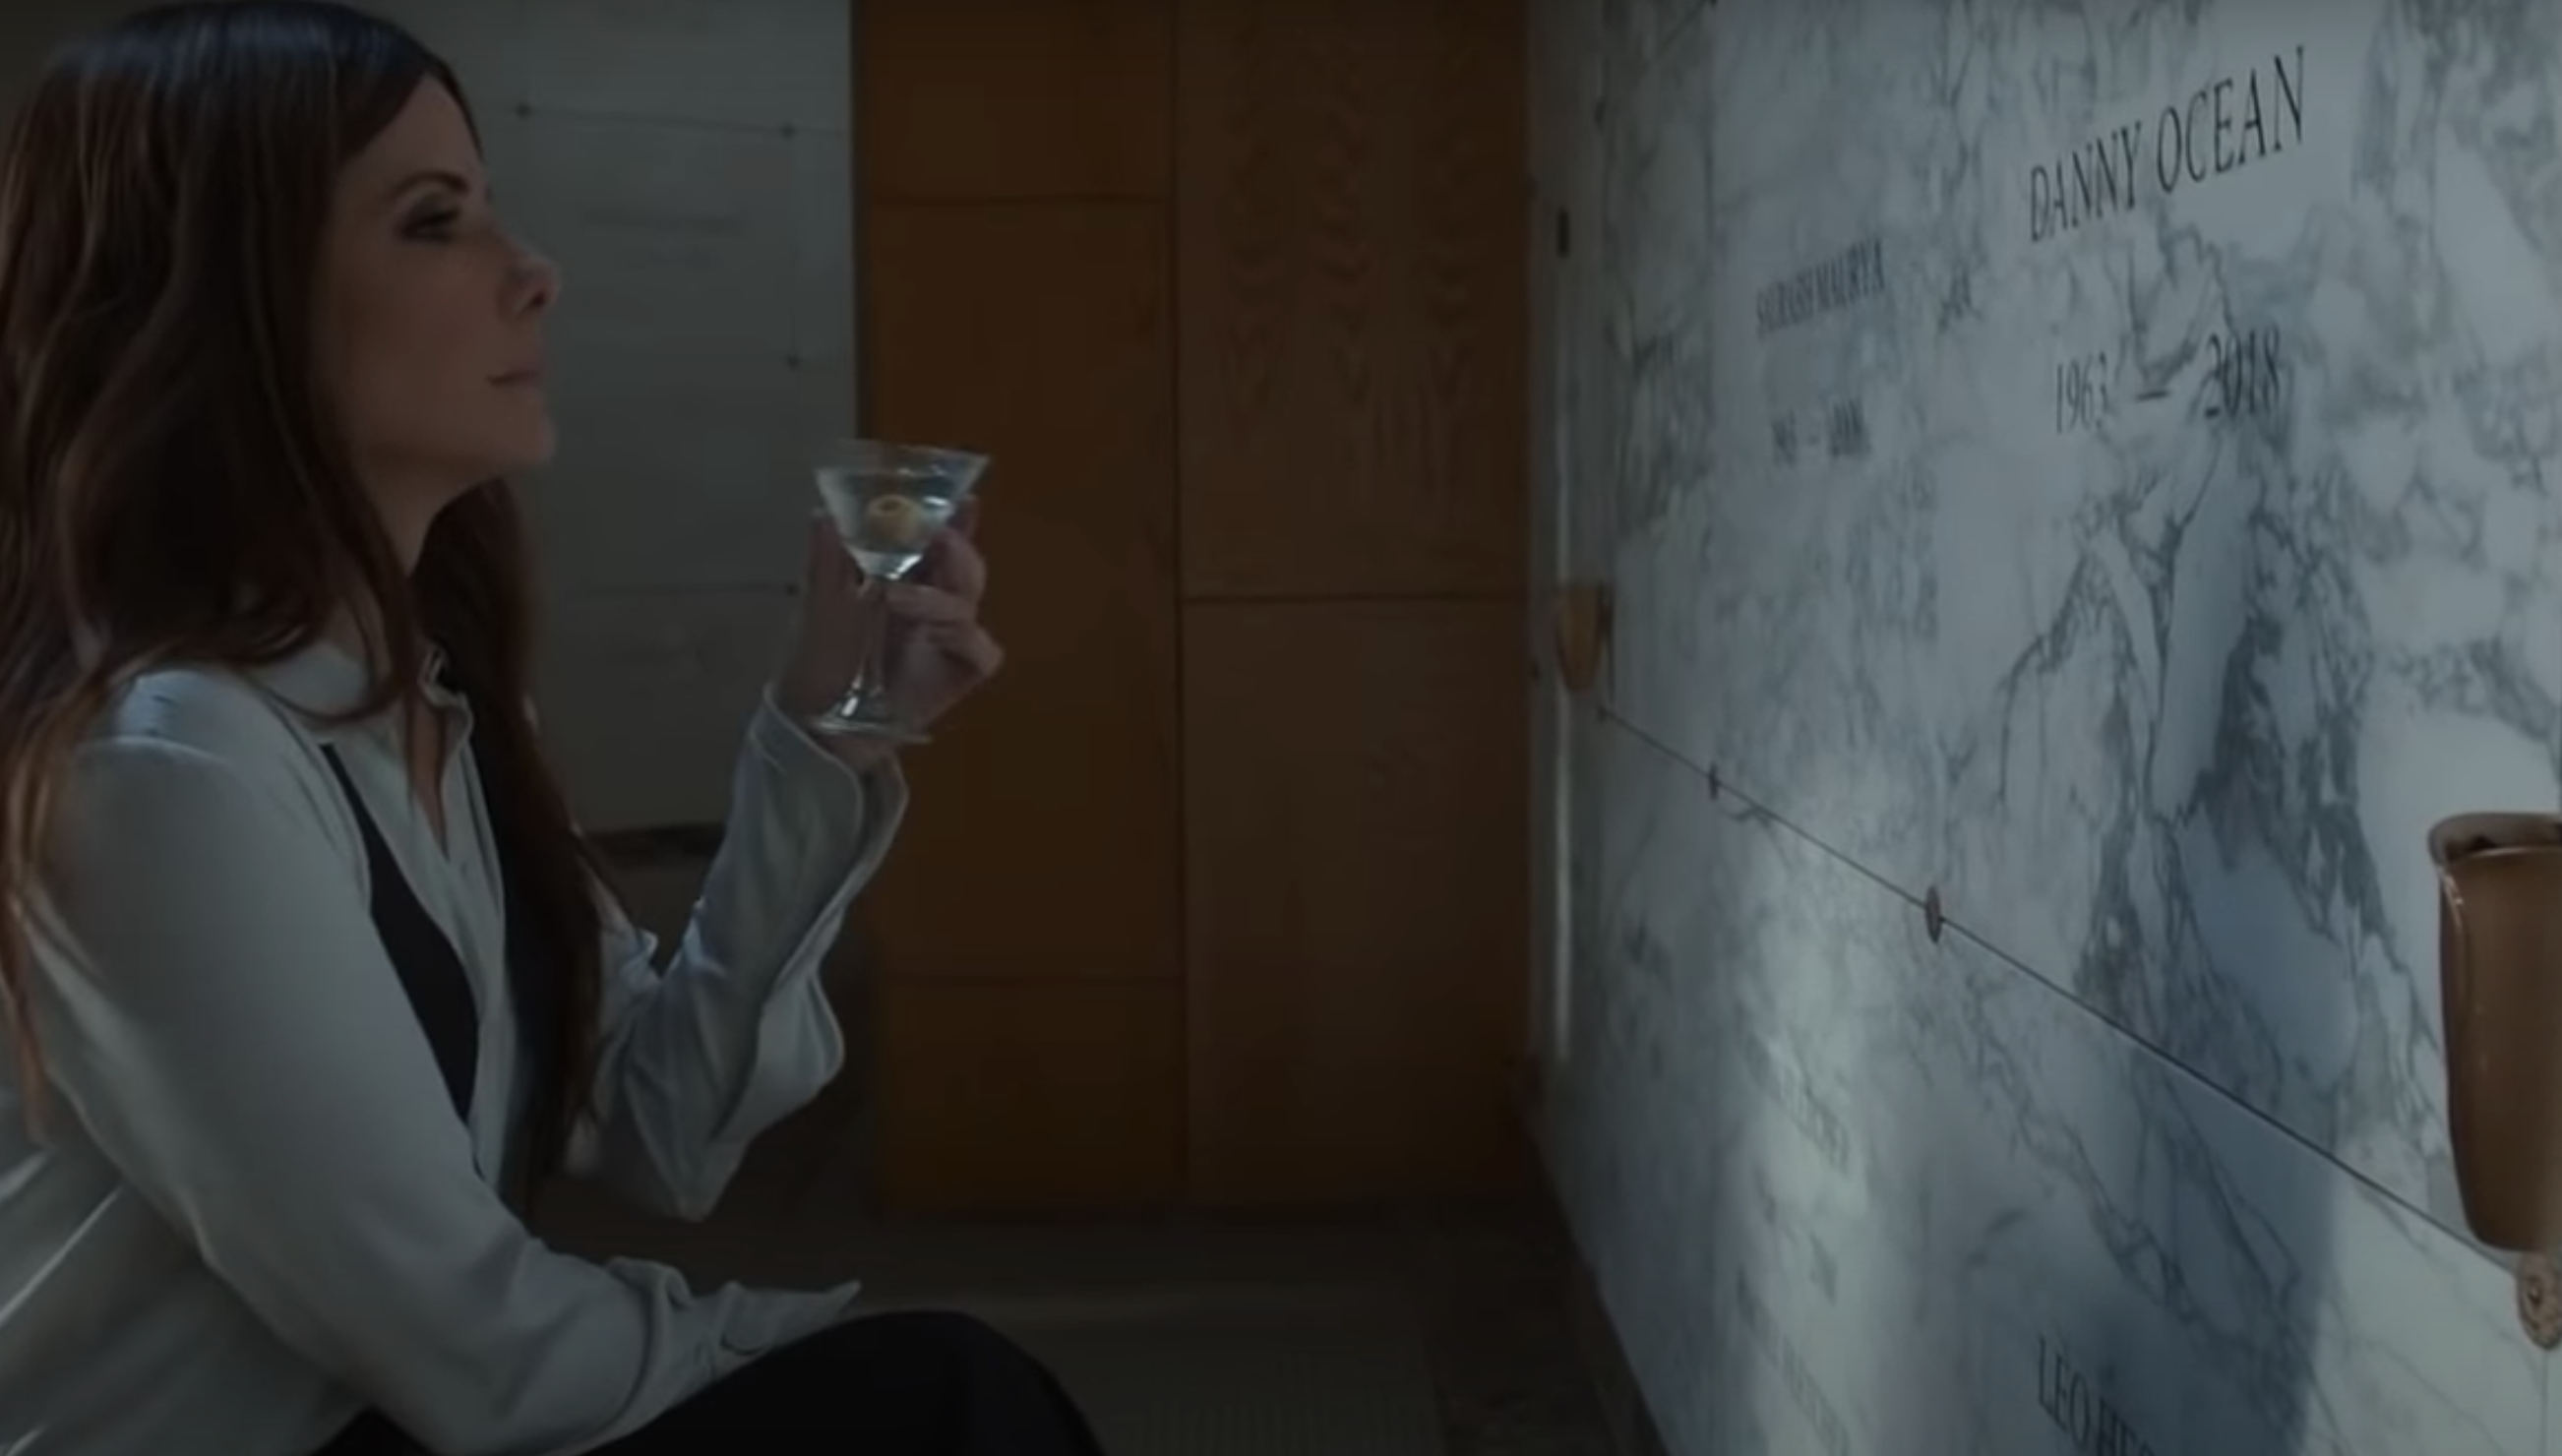 Debbie drinking a martini next to Danny's grave